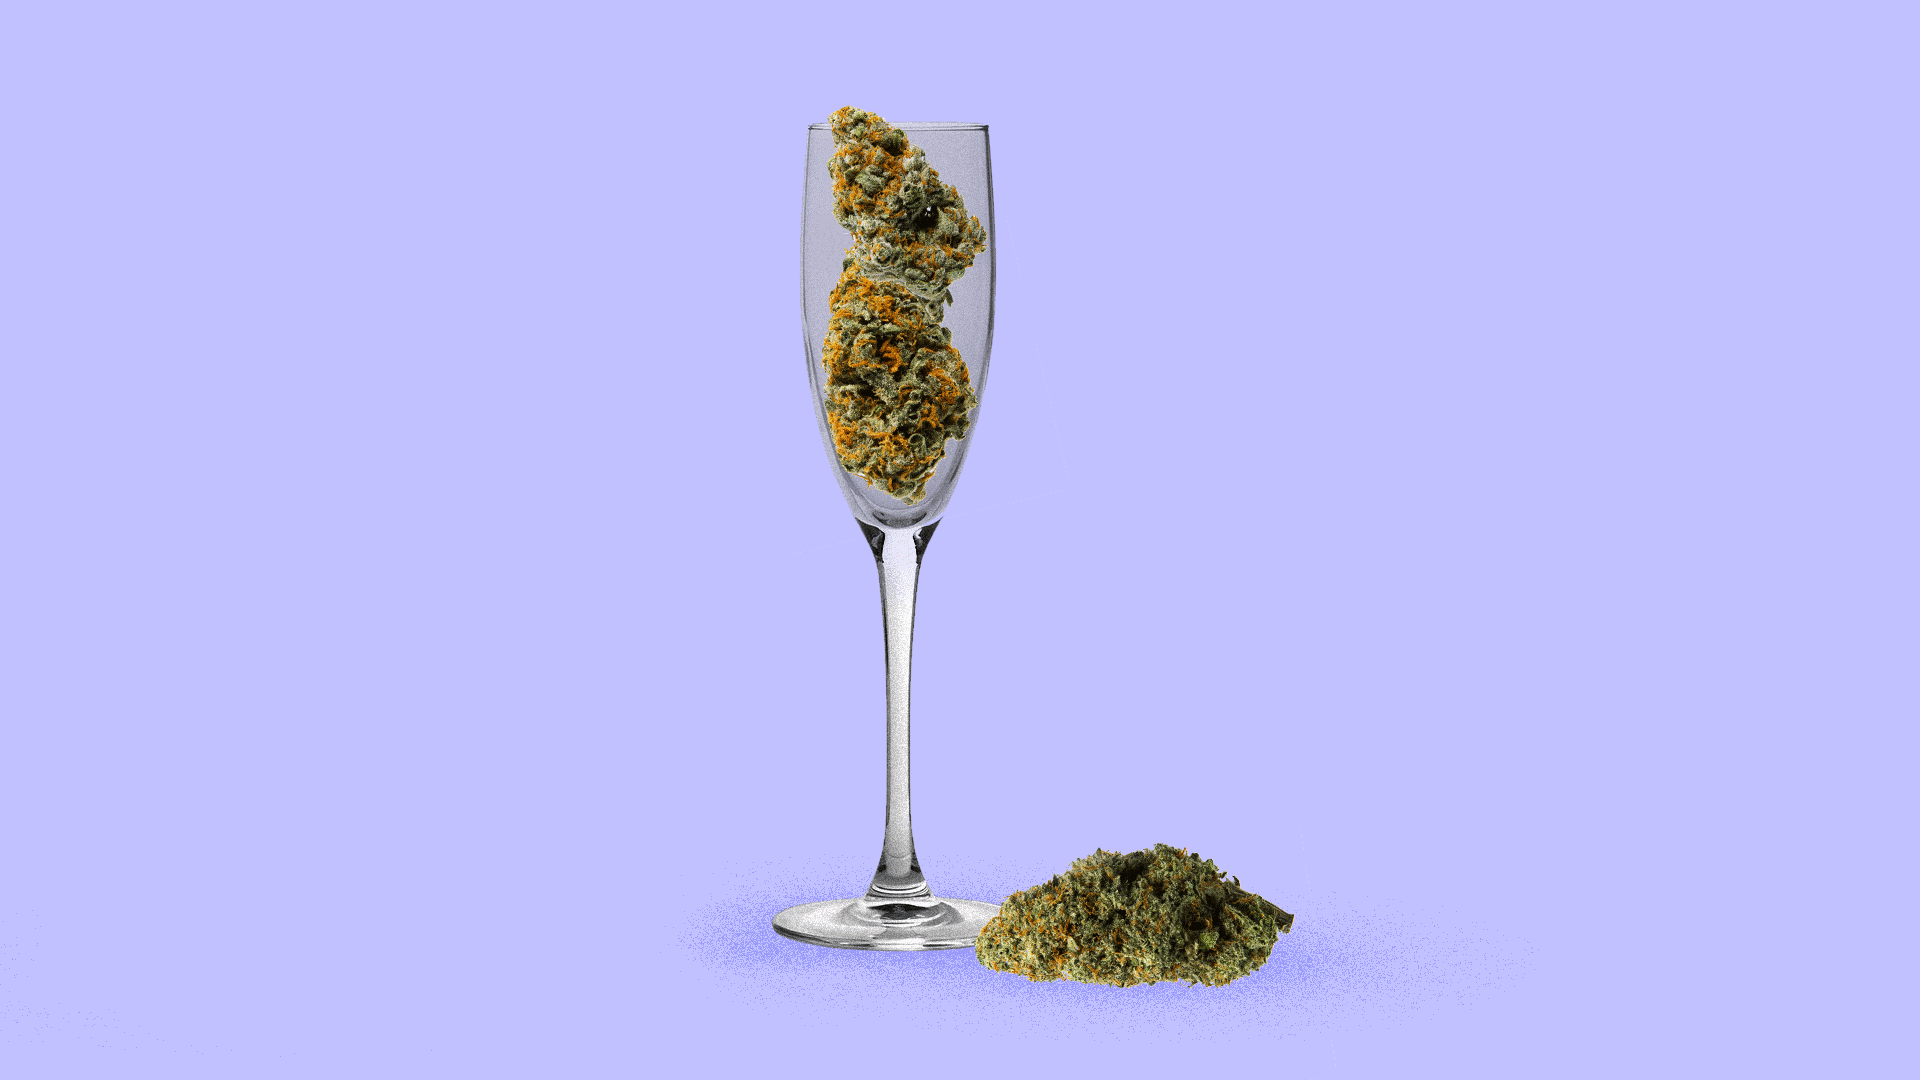 Illustration of marijuana buds in a champagne flute